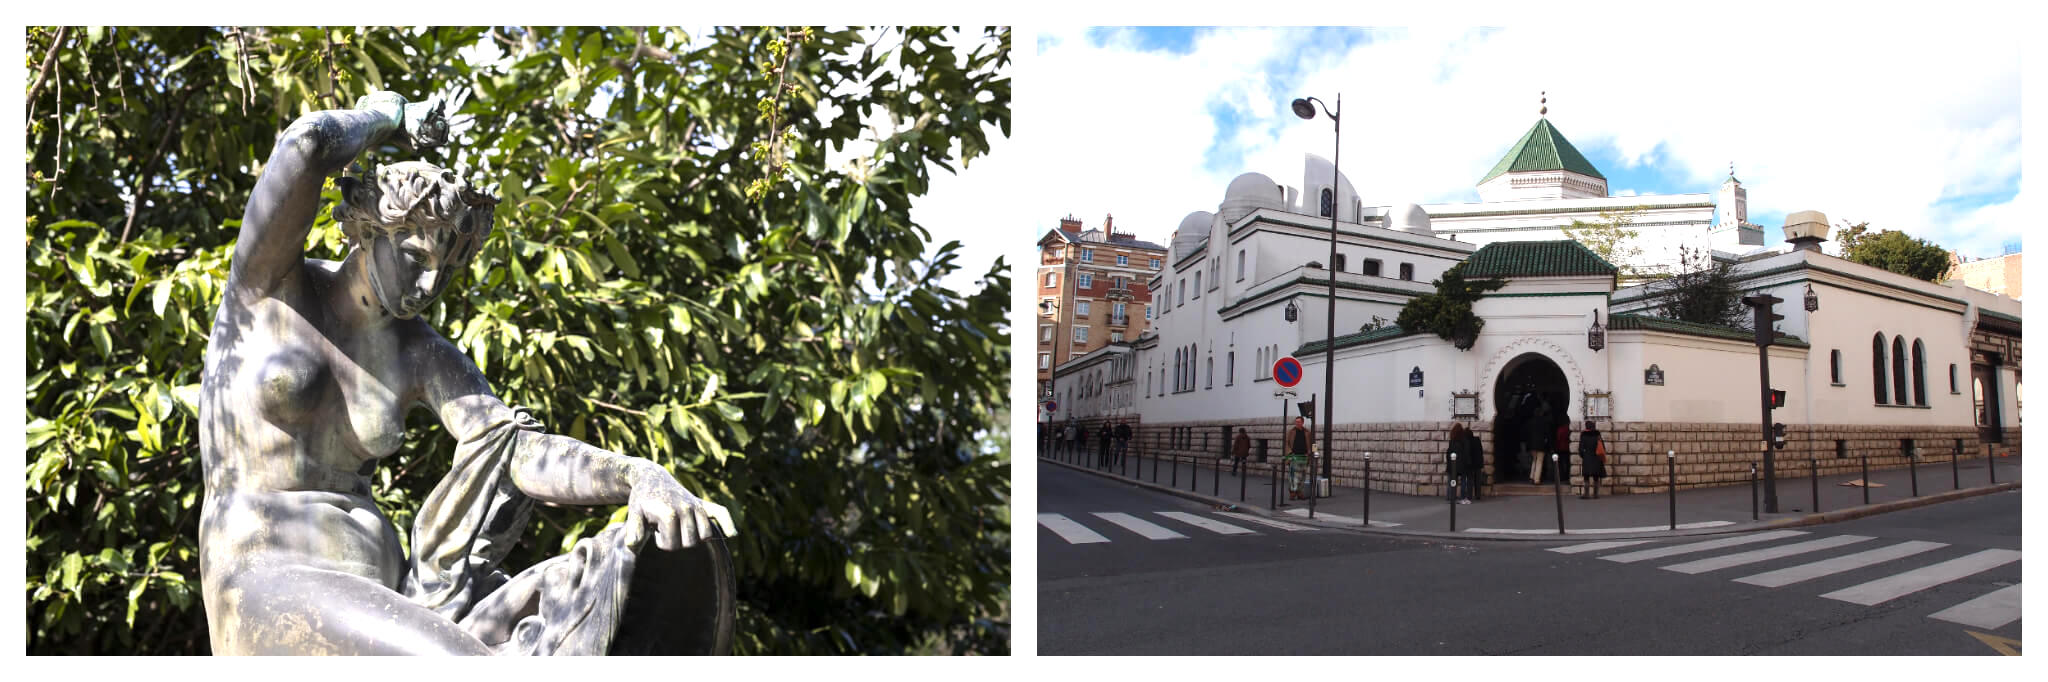 Left: A stone statue of a person with the shadows of leaves on it on a sunny day in the Jardin de Plantes in Paris, Right: The front of the Grande Mosquée de Paris on a sunny day